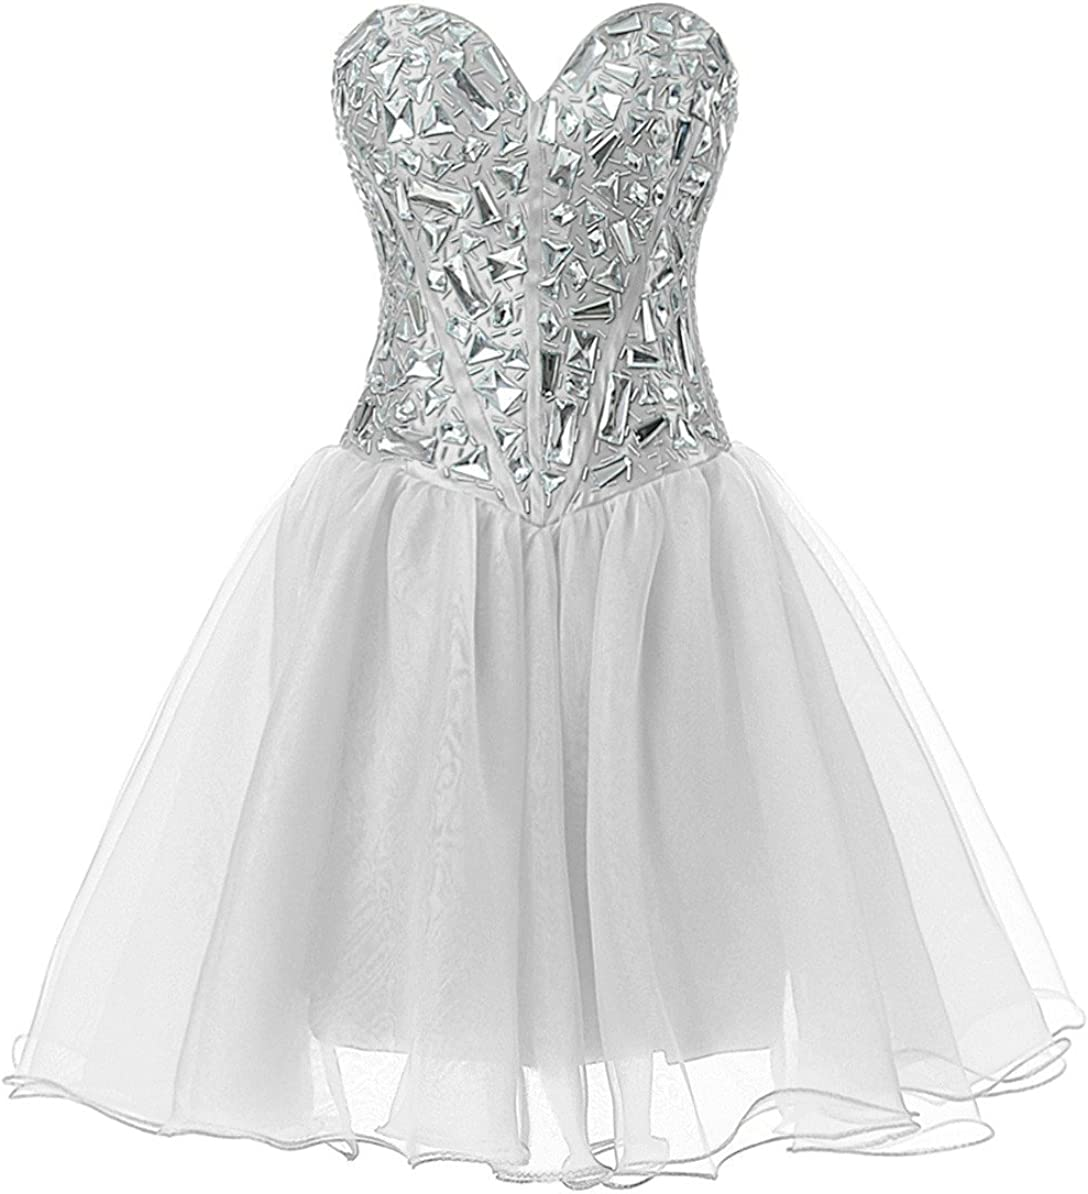 Vantexi Womens Short Crystal Homecoming Dress Cocktail Party Gowns